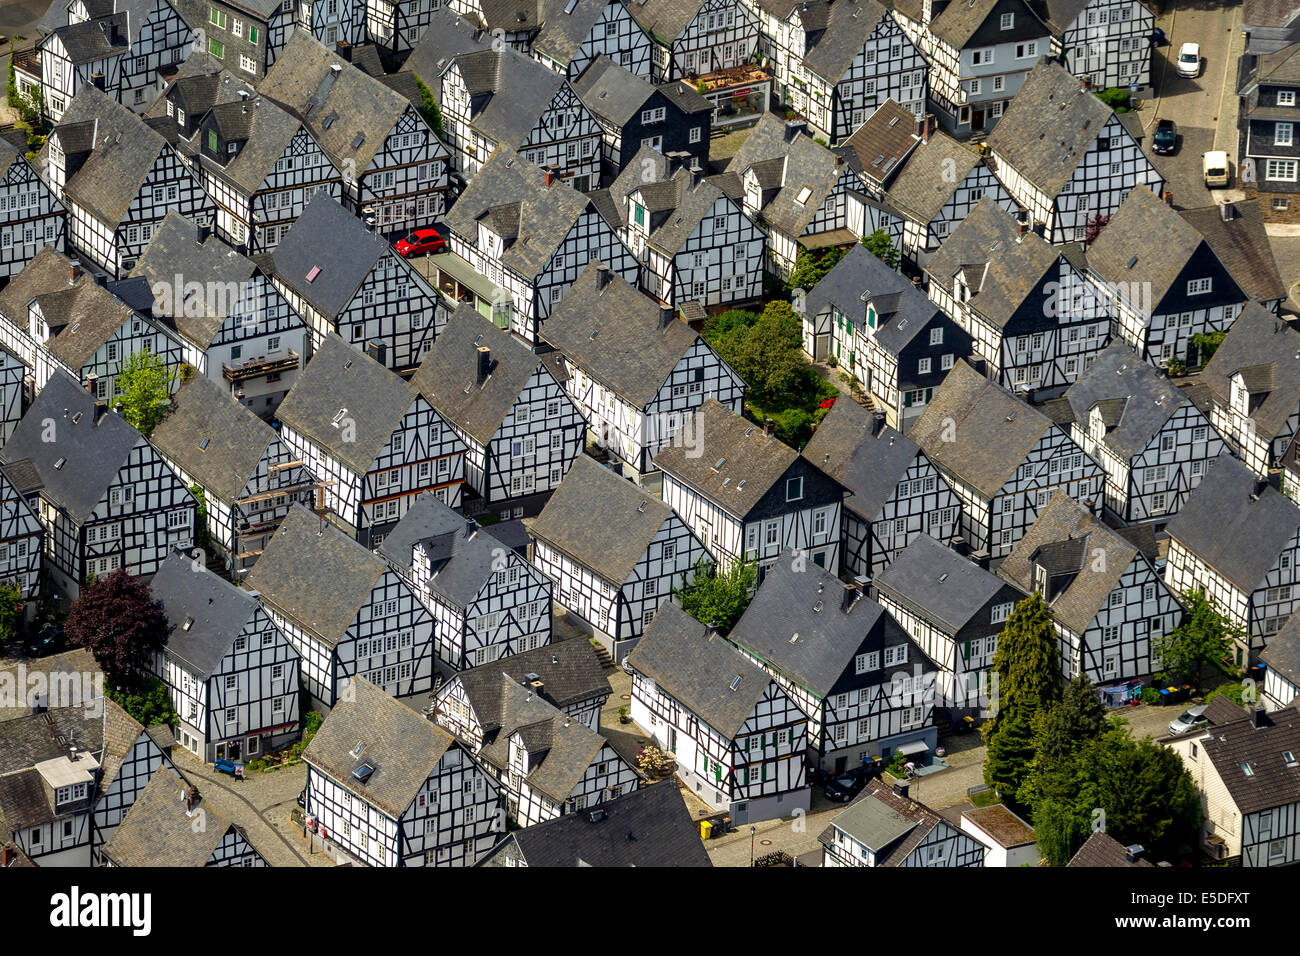 Aerial view, half-timbered houses, age spots, historical city core, Freudenberg, North Rhine-Westphalia, Germany - Stock Image